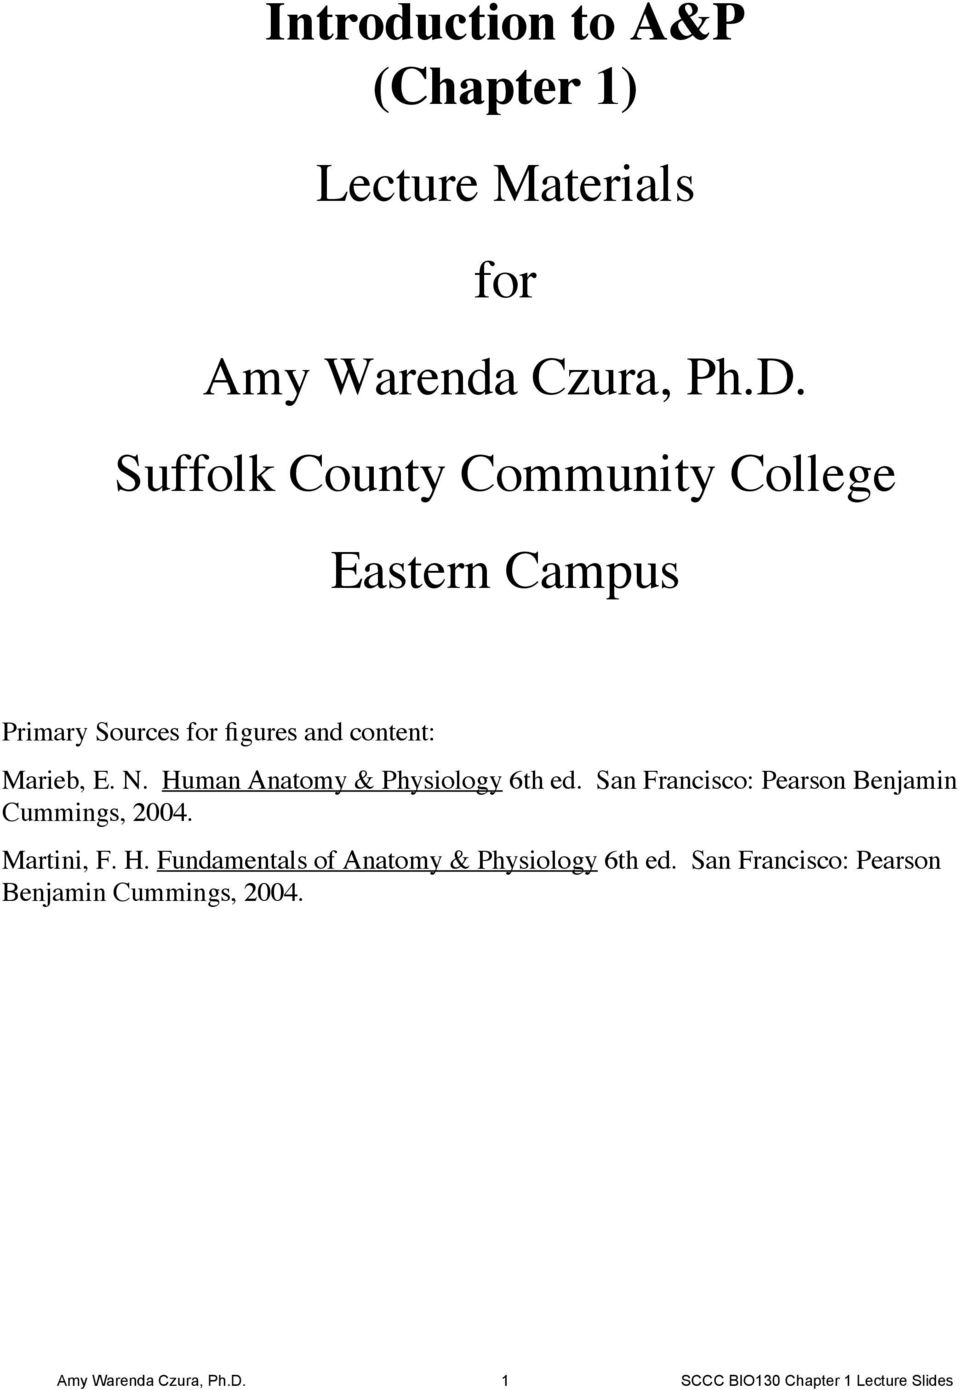 Introduction to A&P (Chapter 1) Lecture Materials for Amy Warenda ...